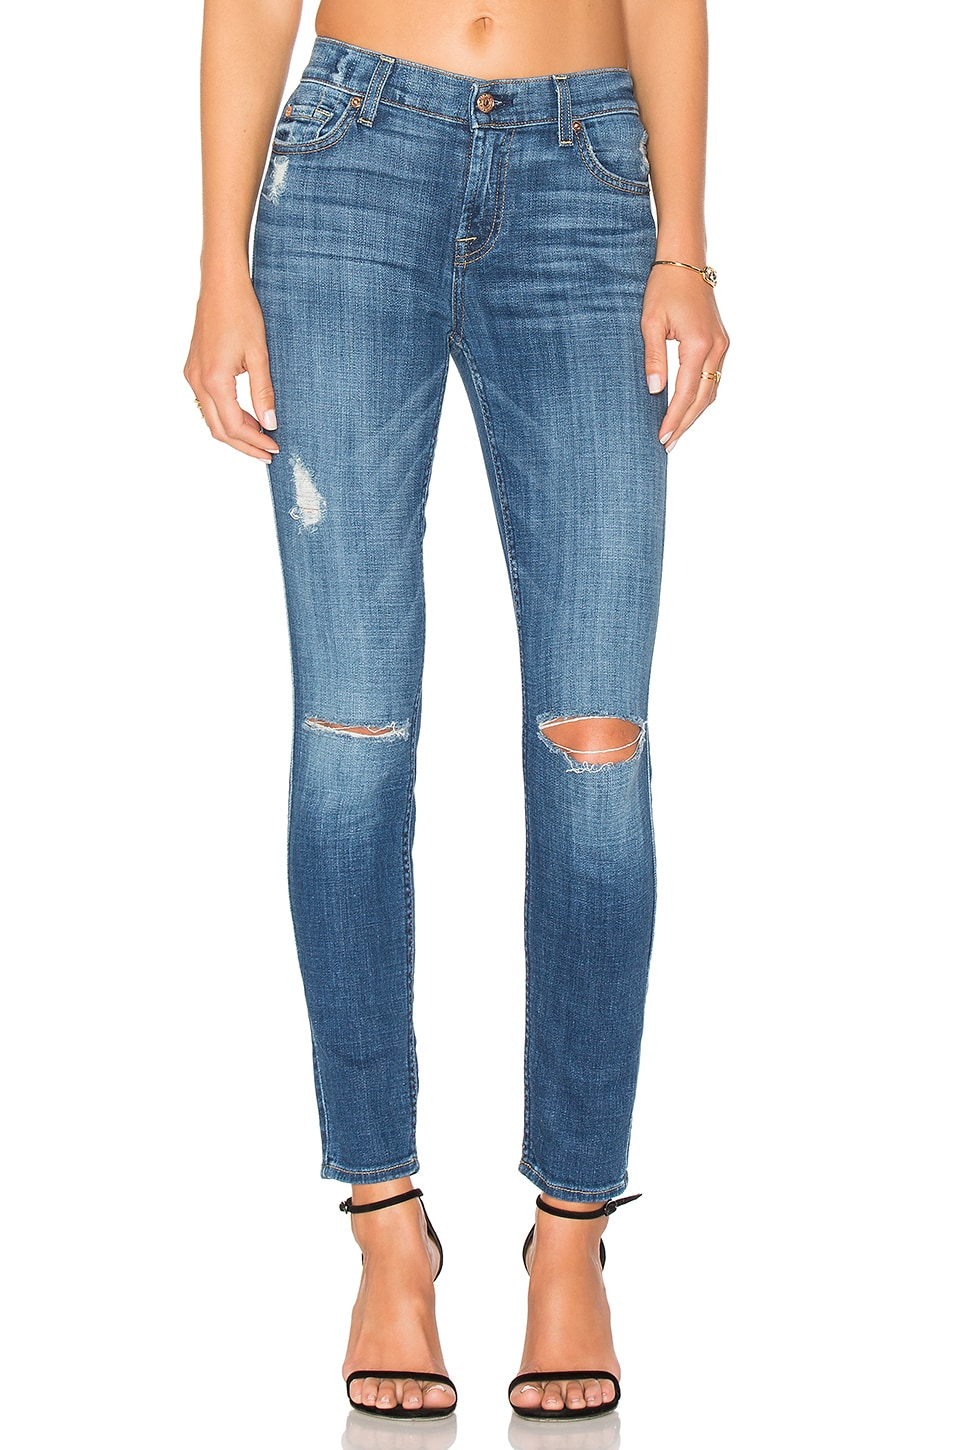 The Ankle Skinny by 7 For All Mankind